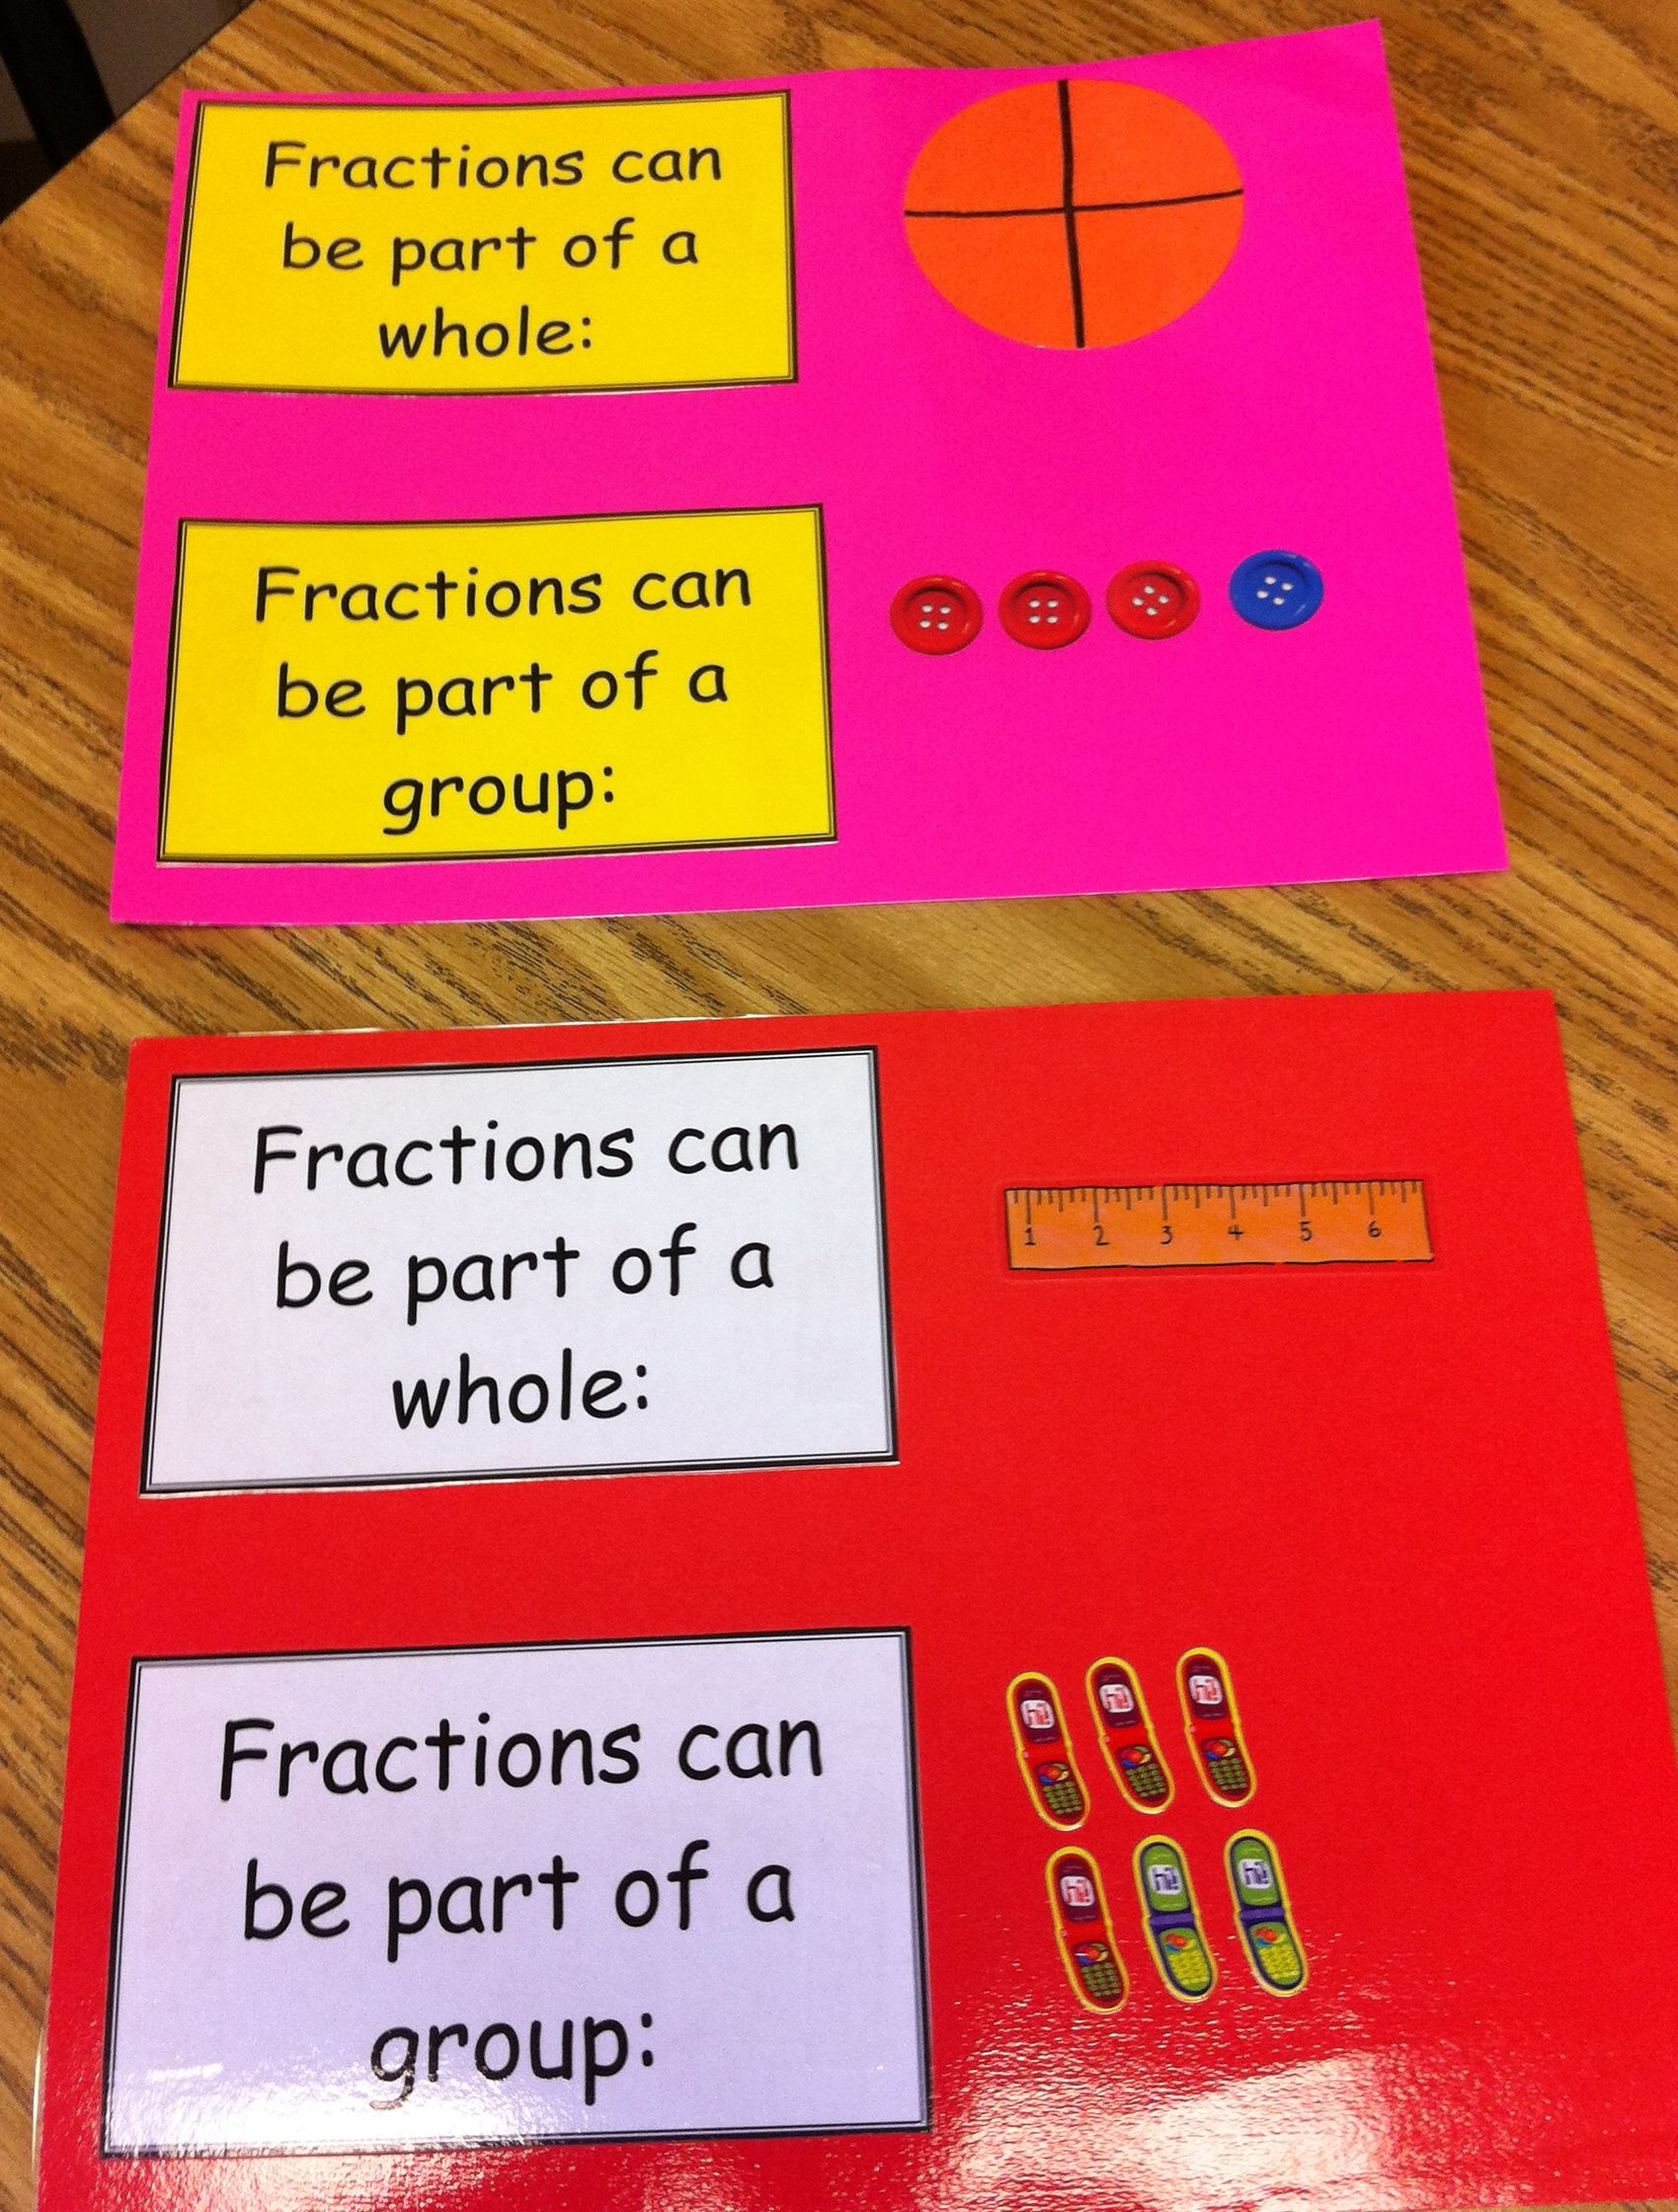 Fraction Anchor Charts Will Be Very Helpful For My Math